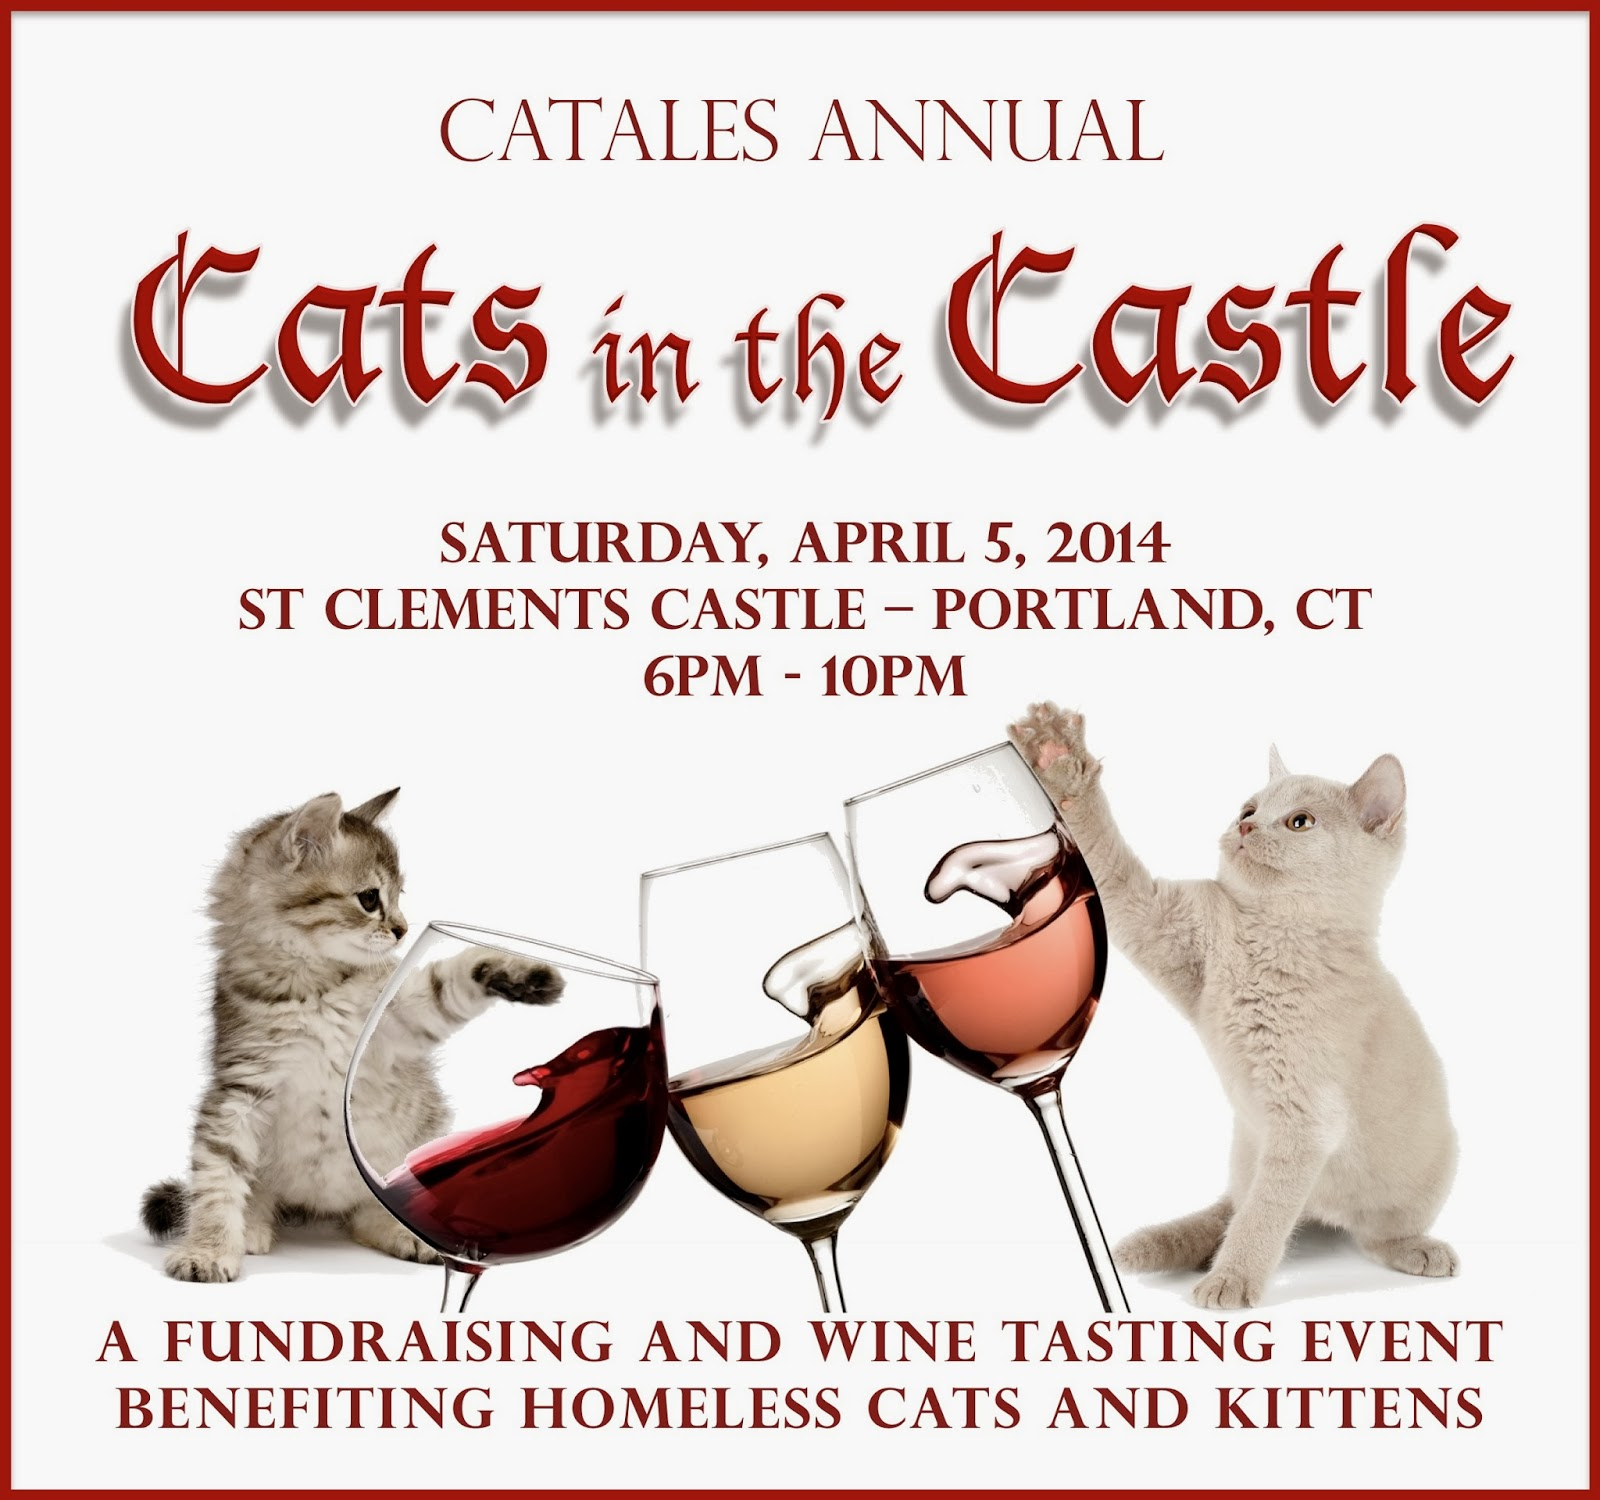 www.catales.org/catsinthecastle2014